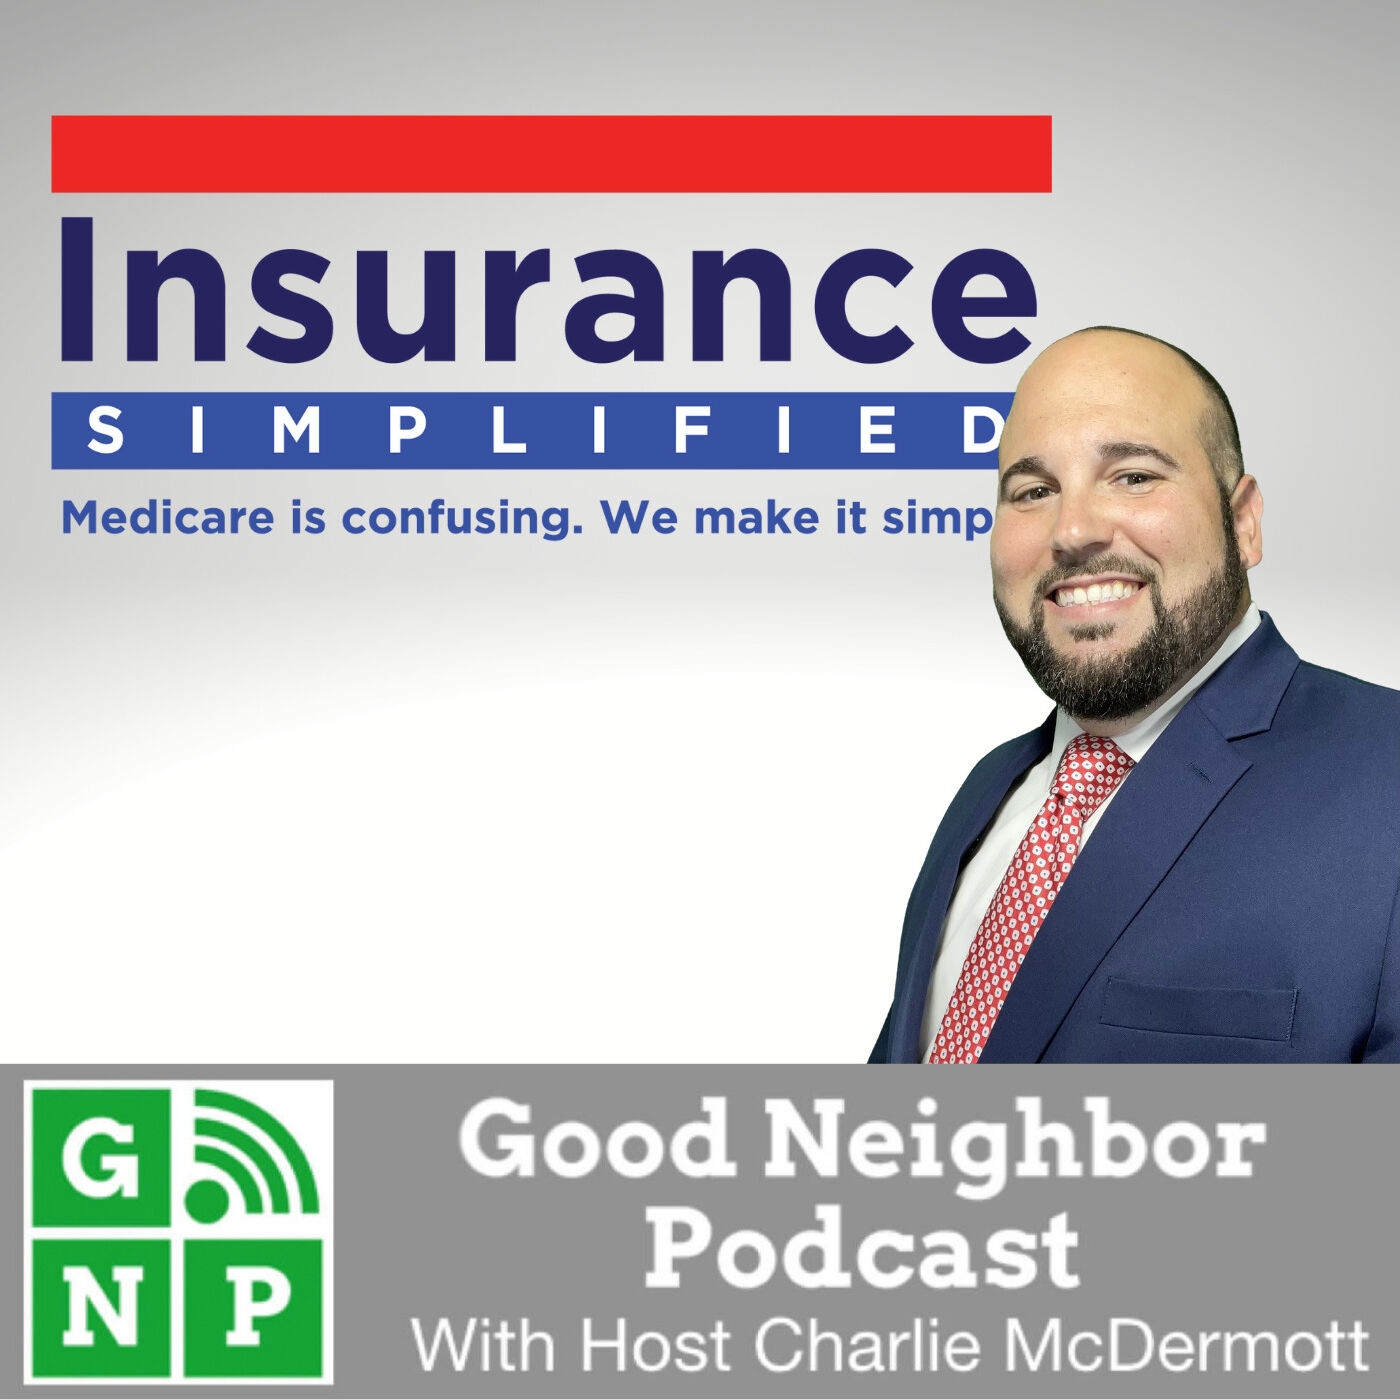 EP #460: Insurance Simplified with Anthony Idaspe